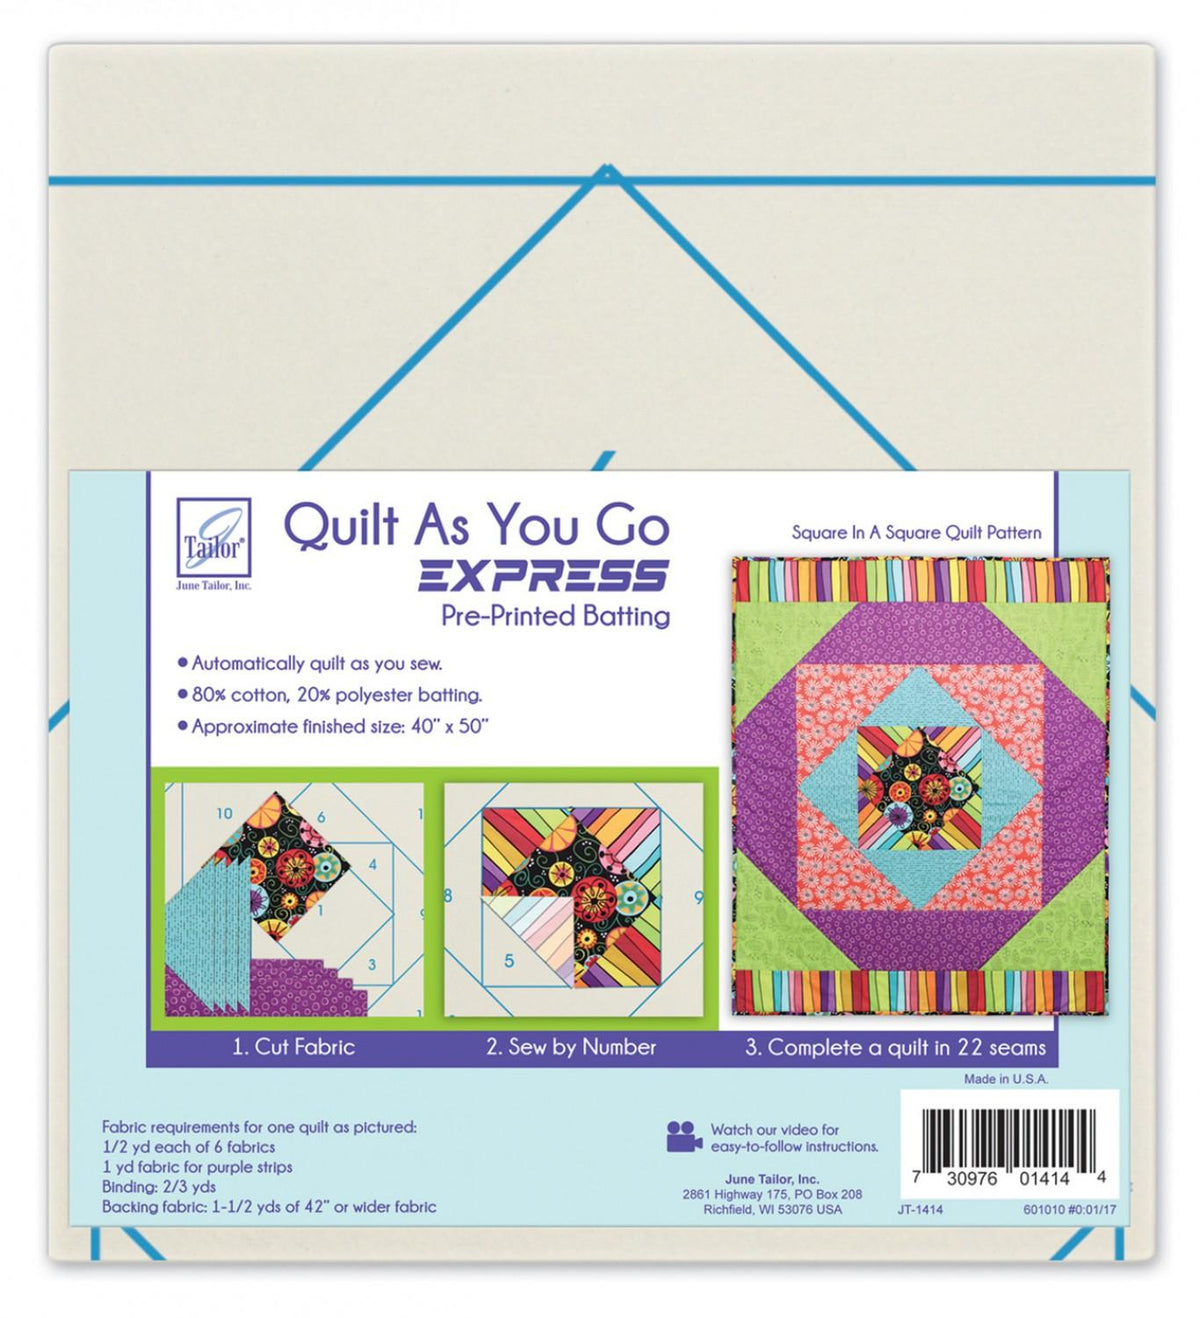 Quilt As You Go Express Kit